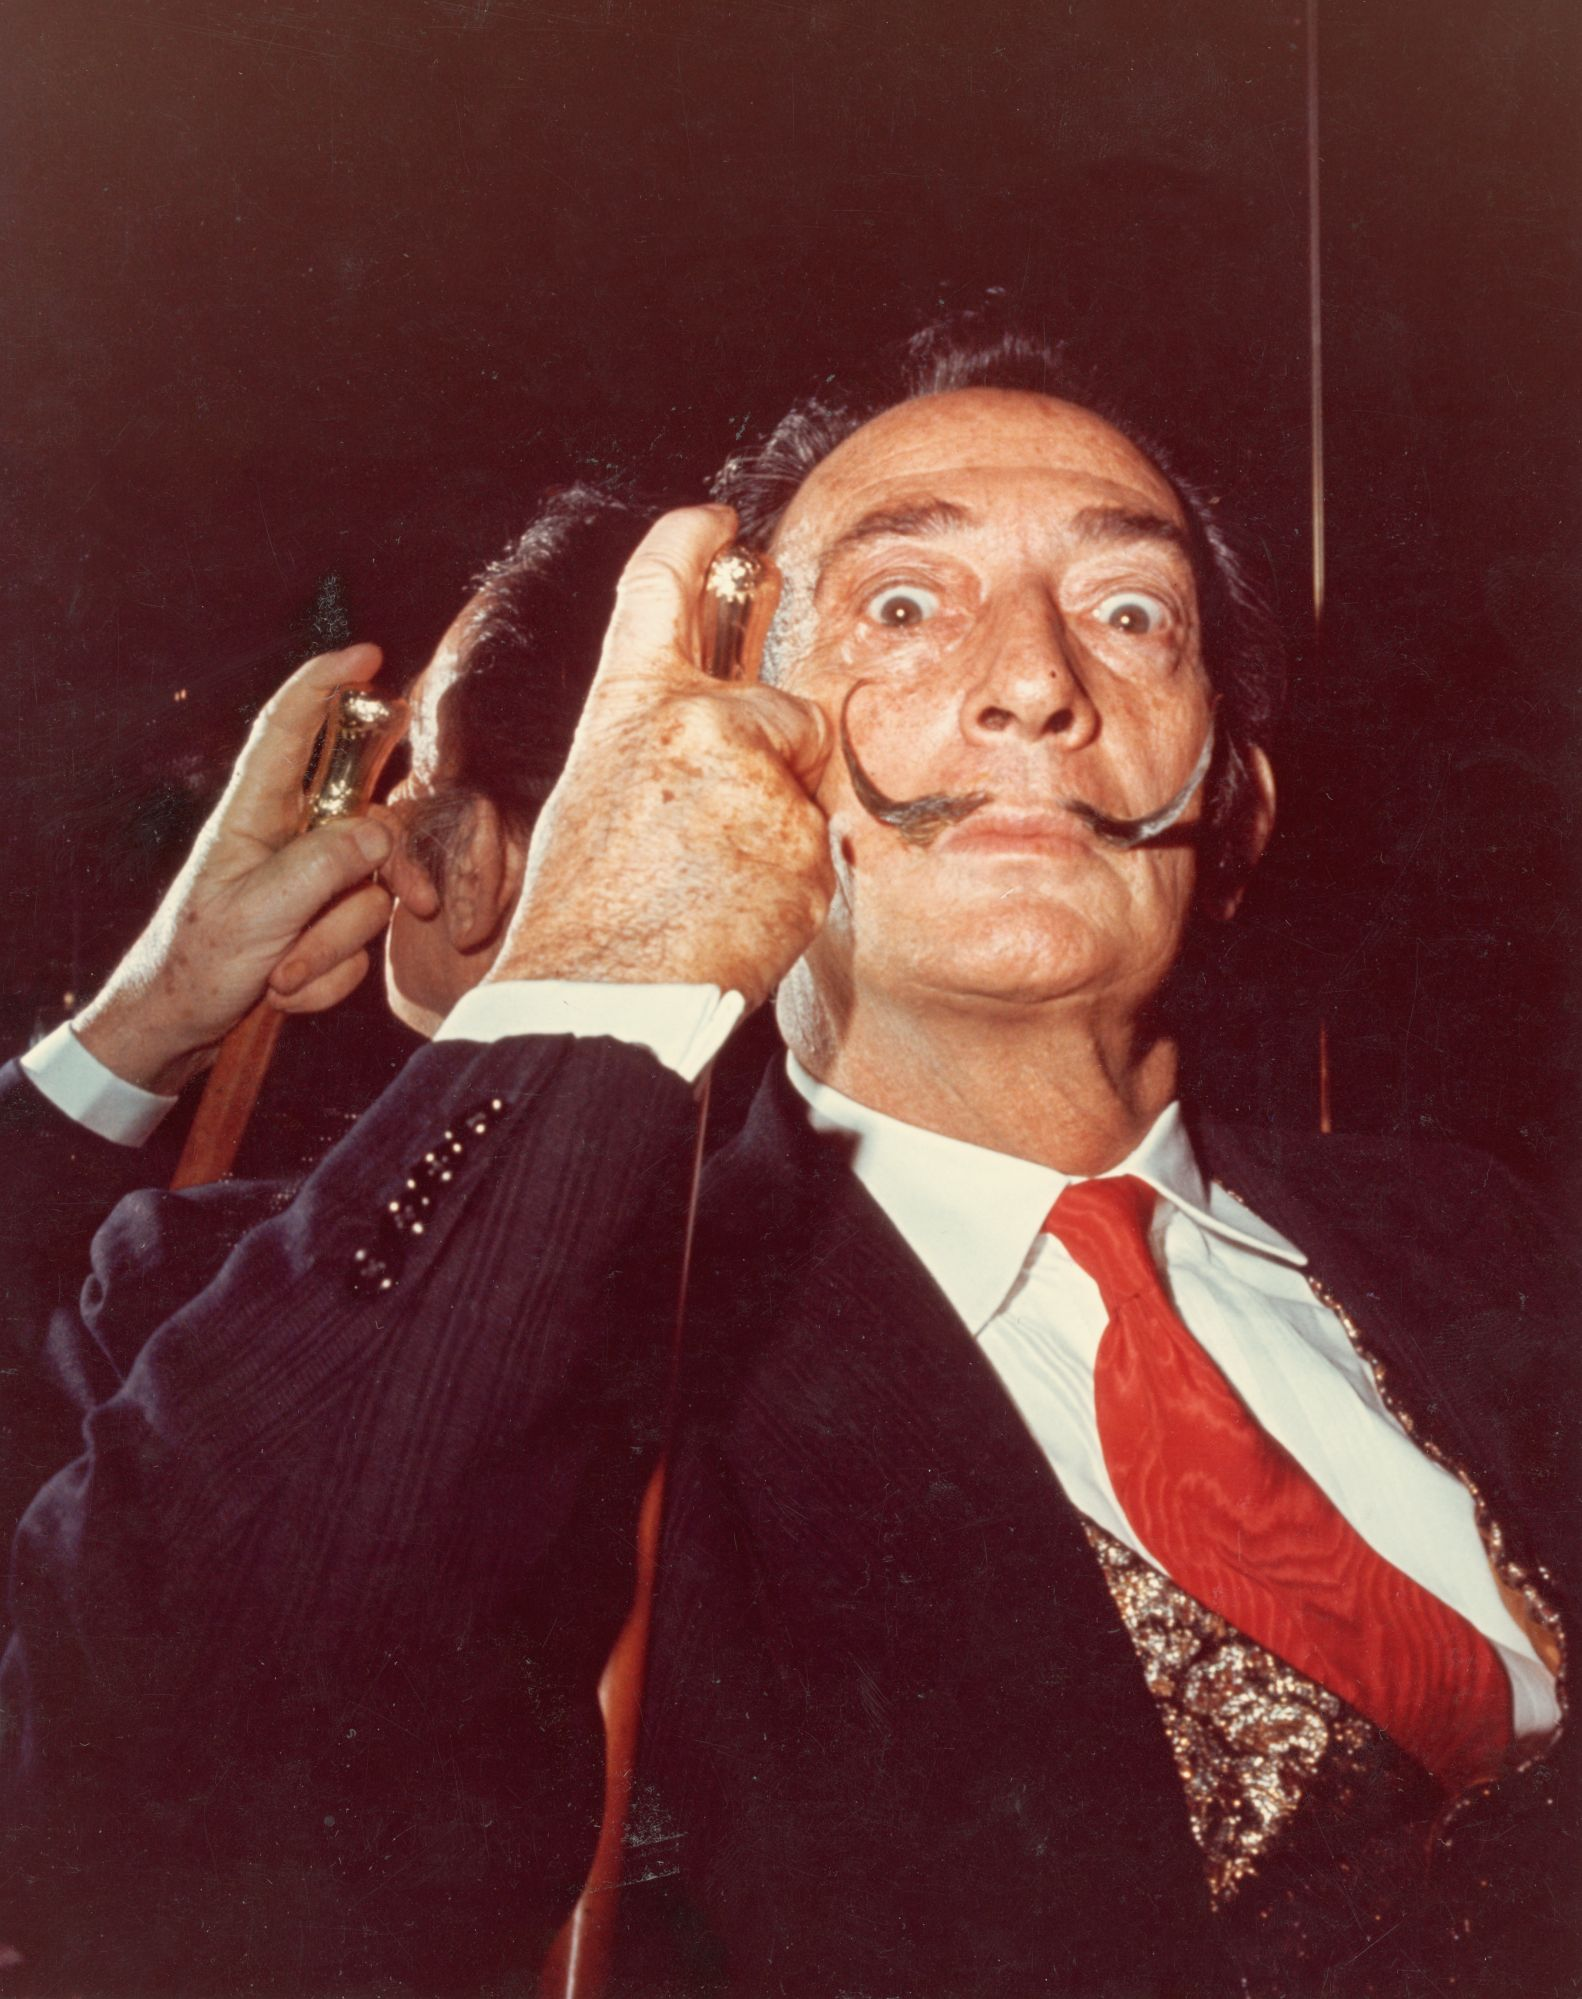 Portrait of Spanish artist Salvador Dali (1904 - 1989) with his cane, 1960s. (Photo by Hulton Archive/Getty Images)